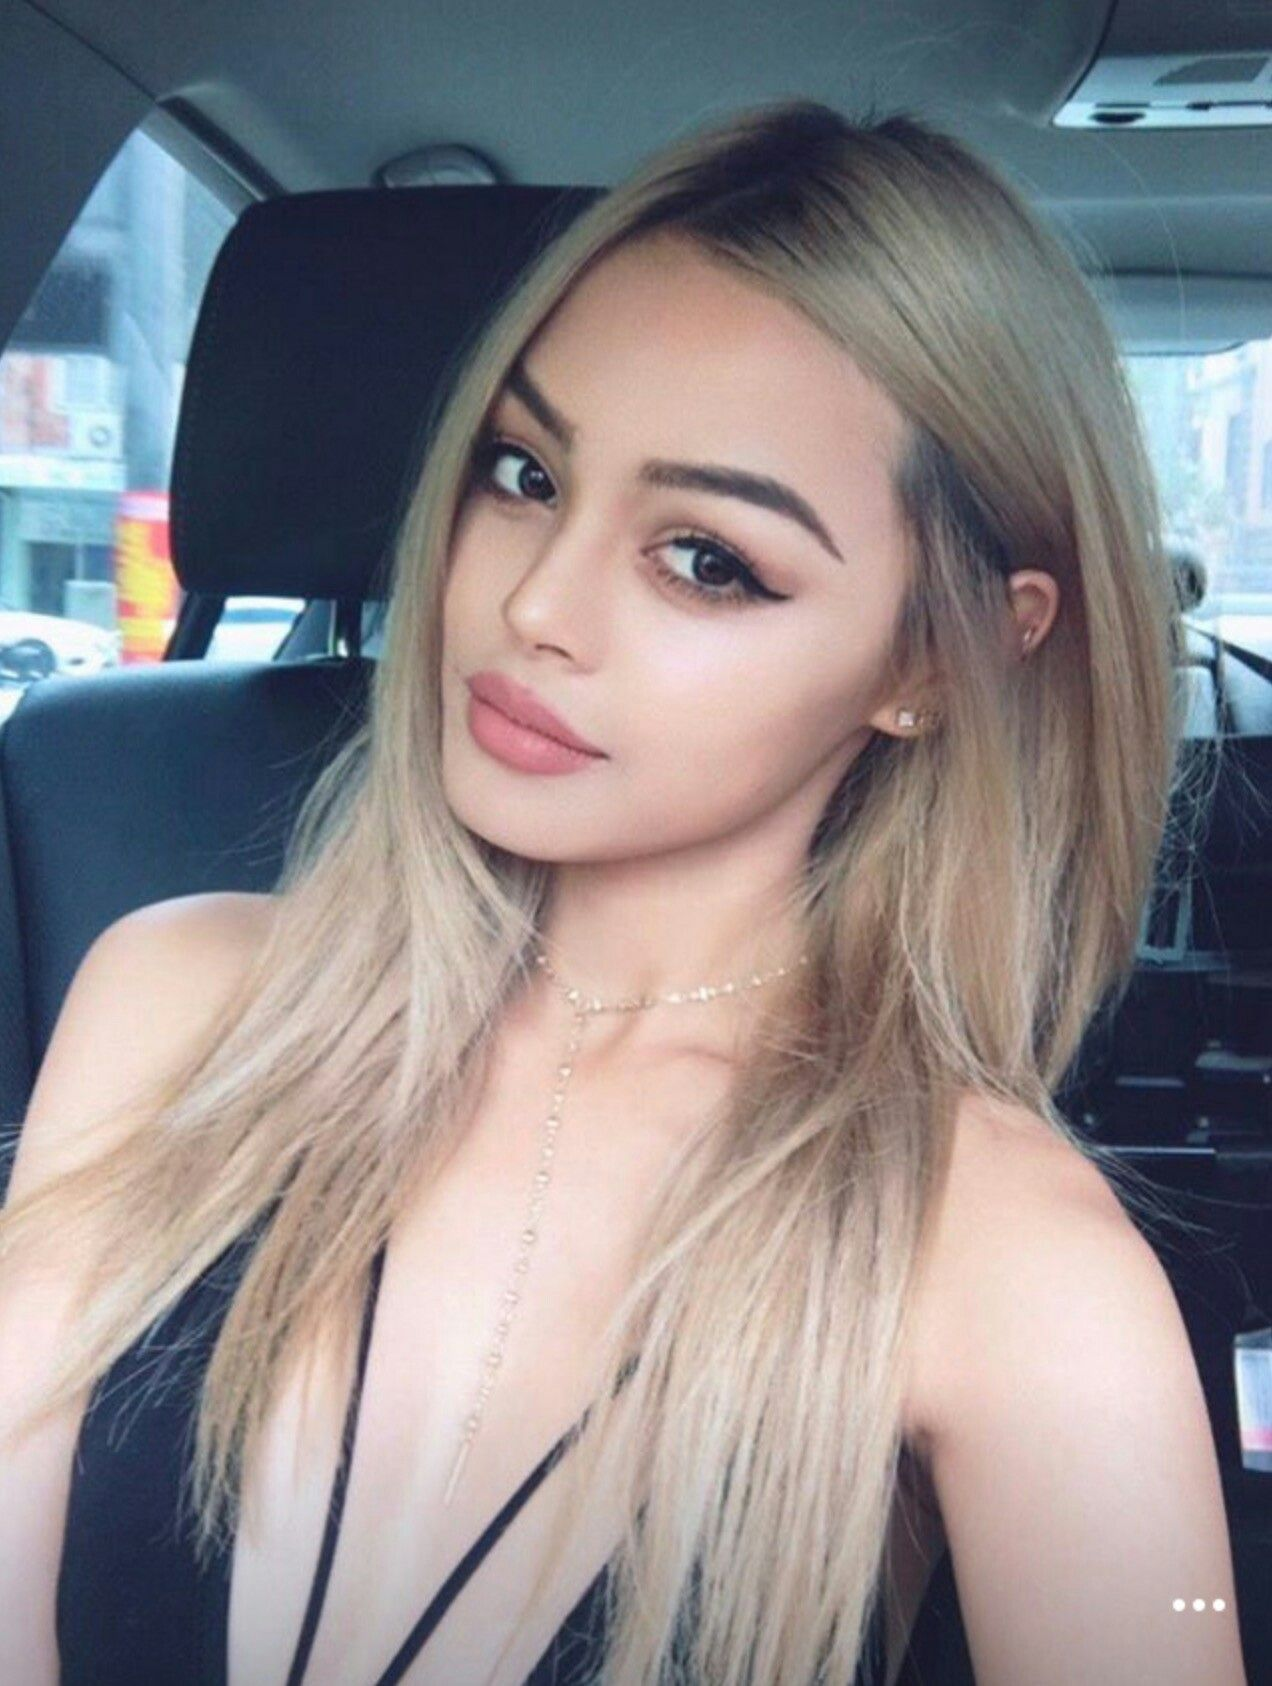 Lily Maymac nude photos 2019